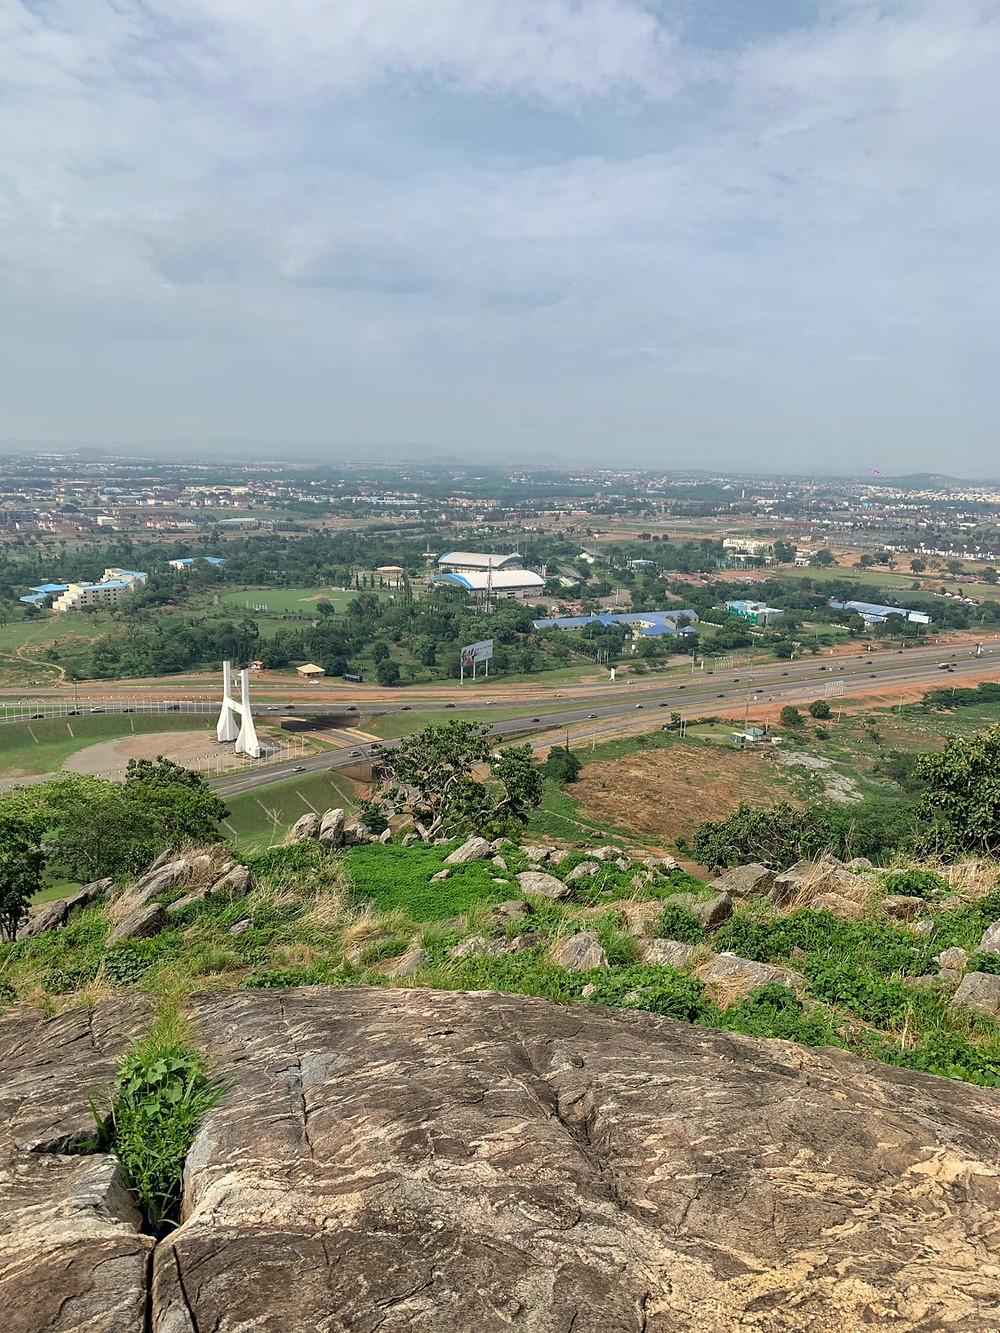 View of Abuja city gate from the hiking trail